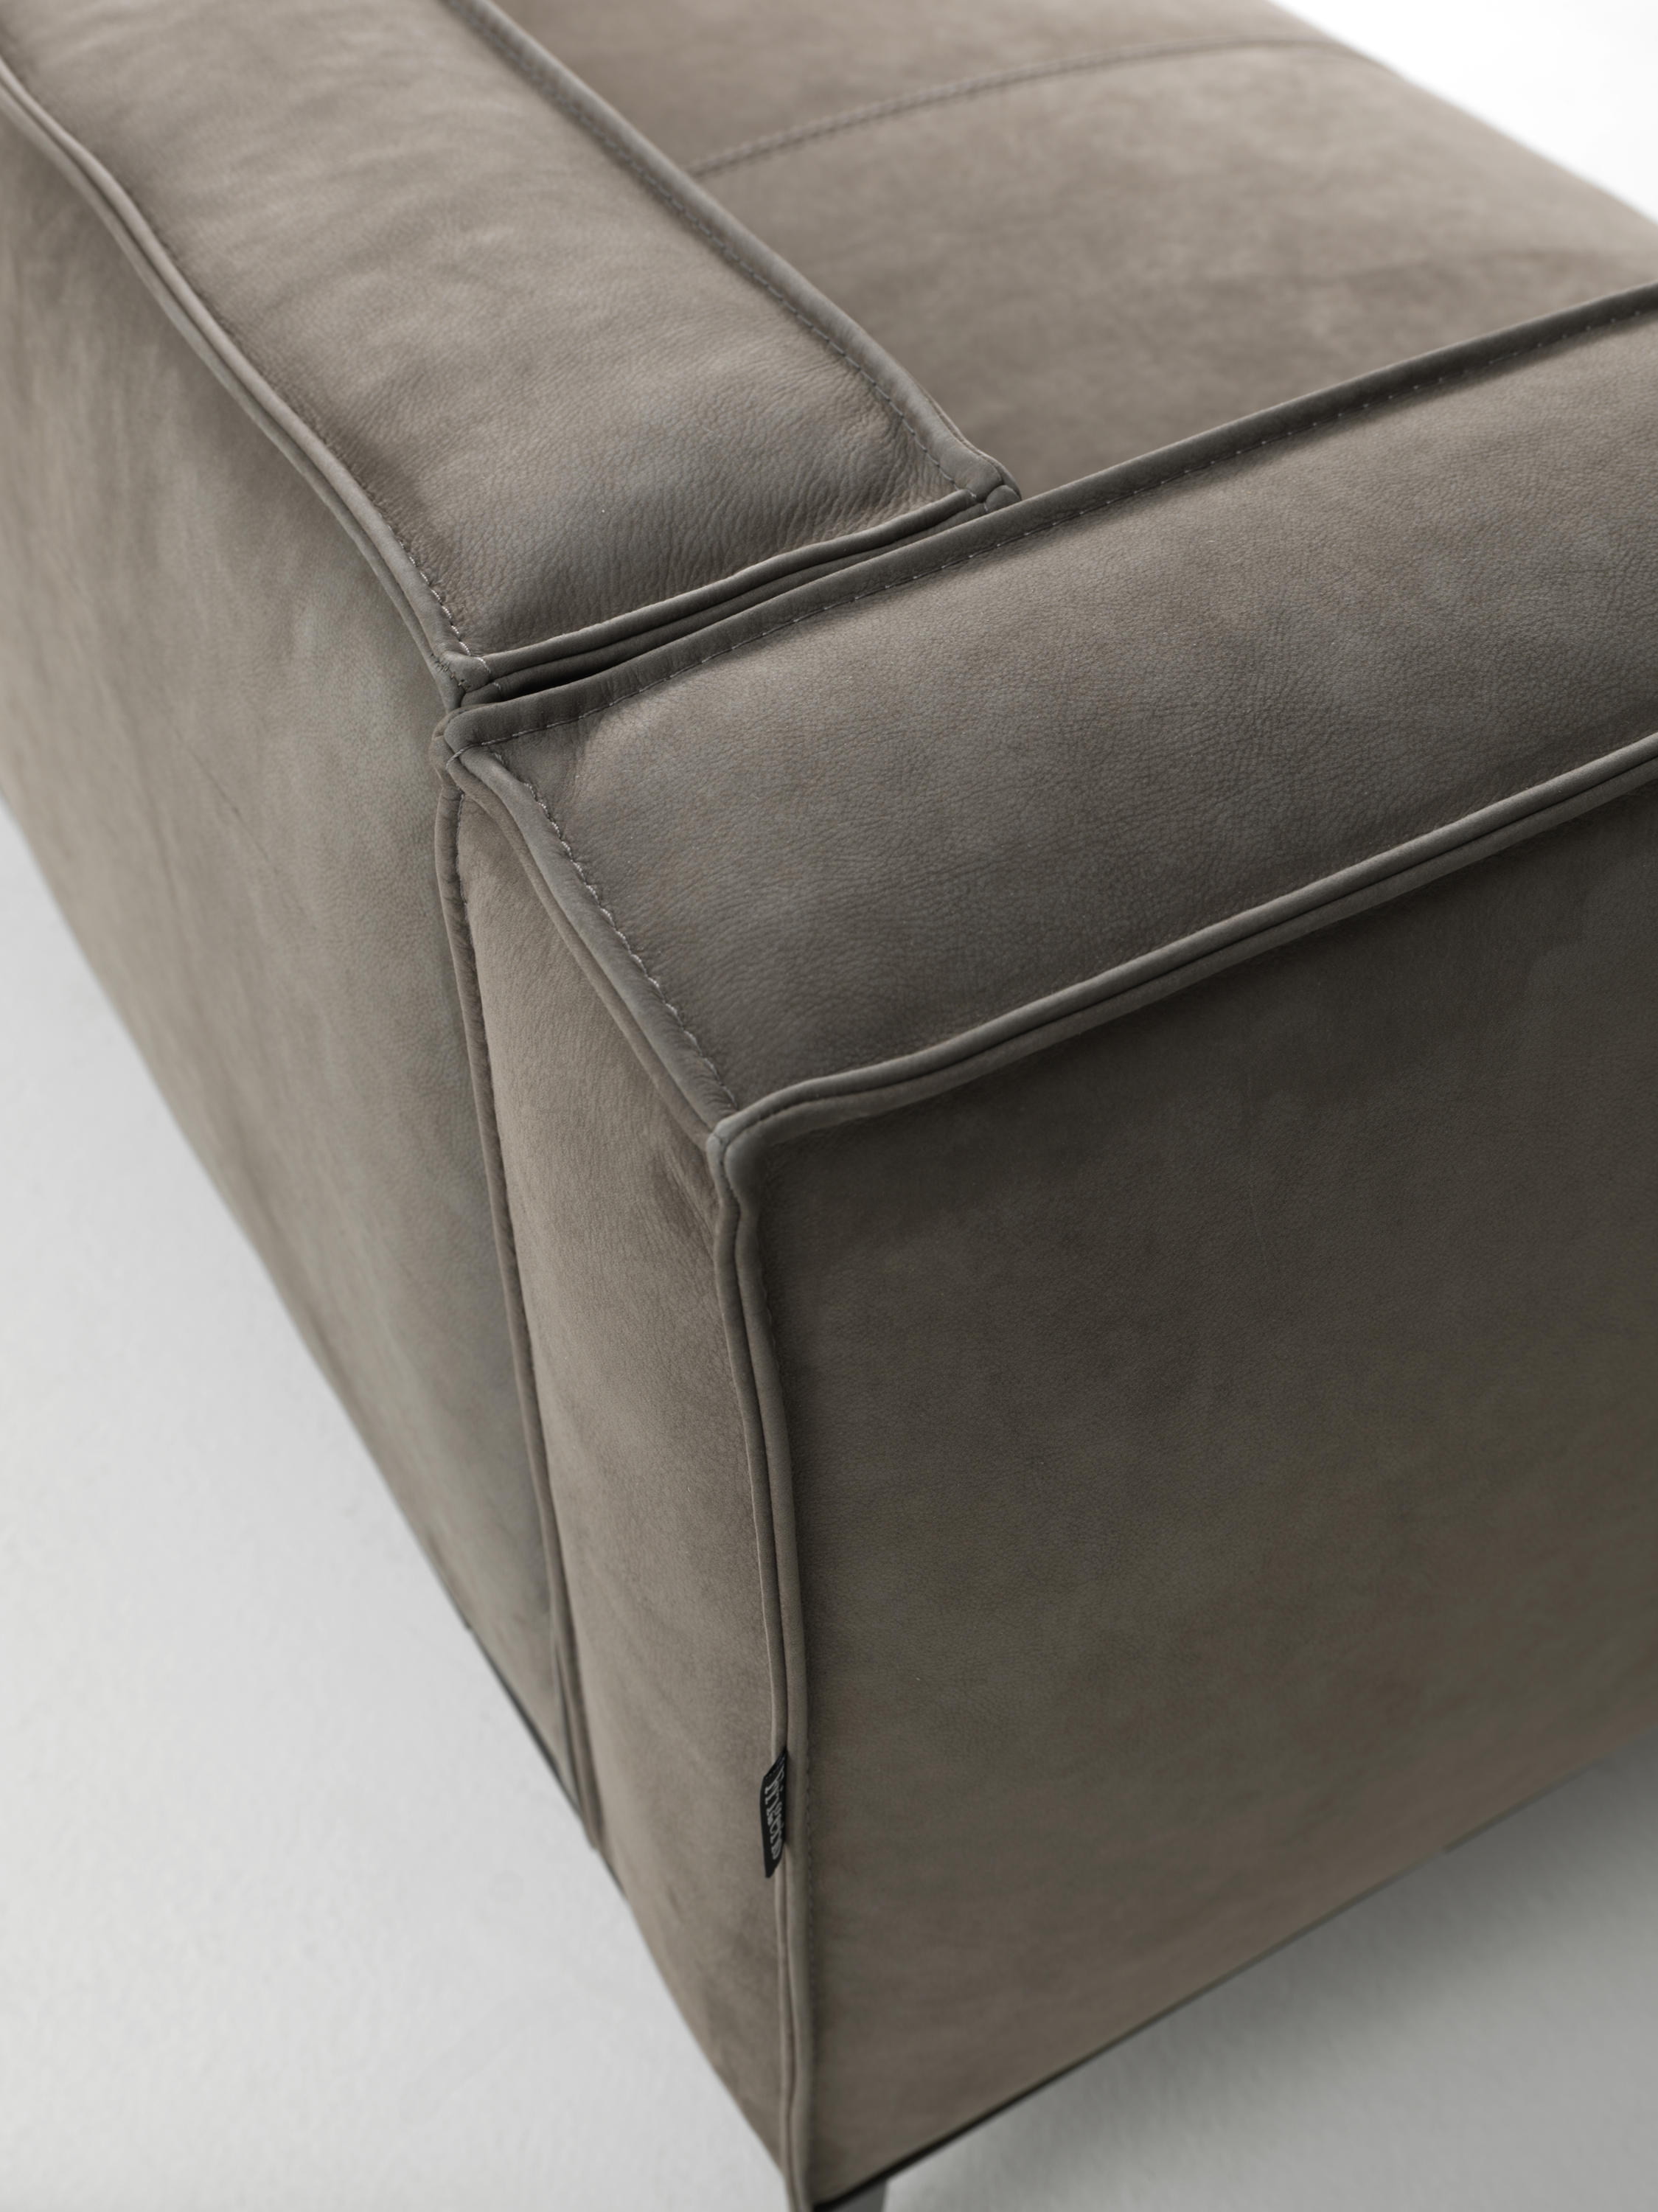 ... TAYLOR JUNIOR By Frigerio | Sofas